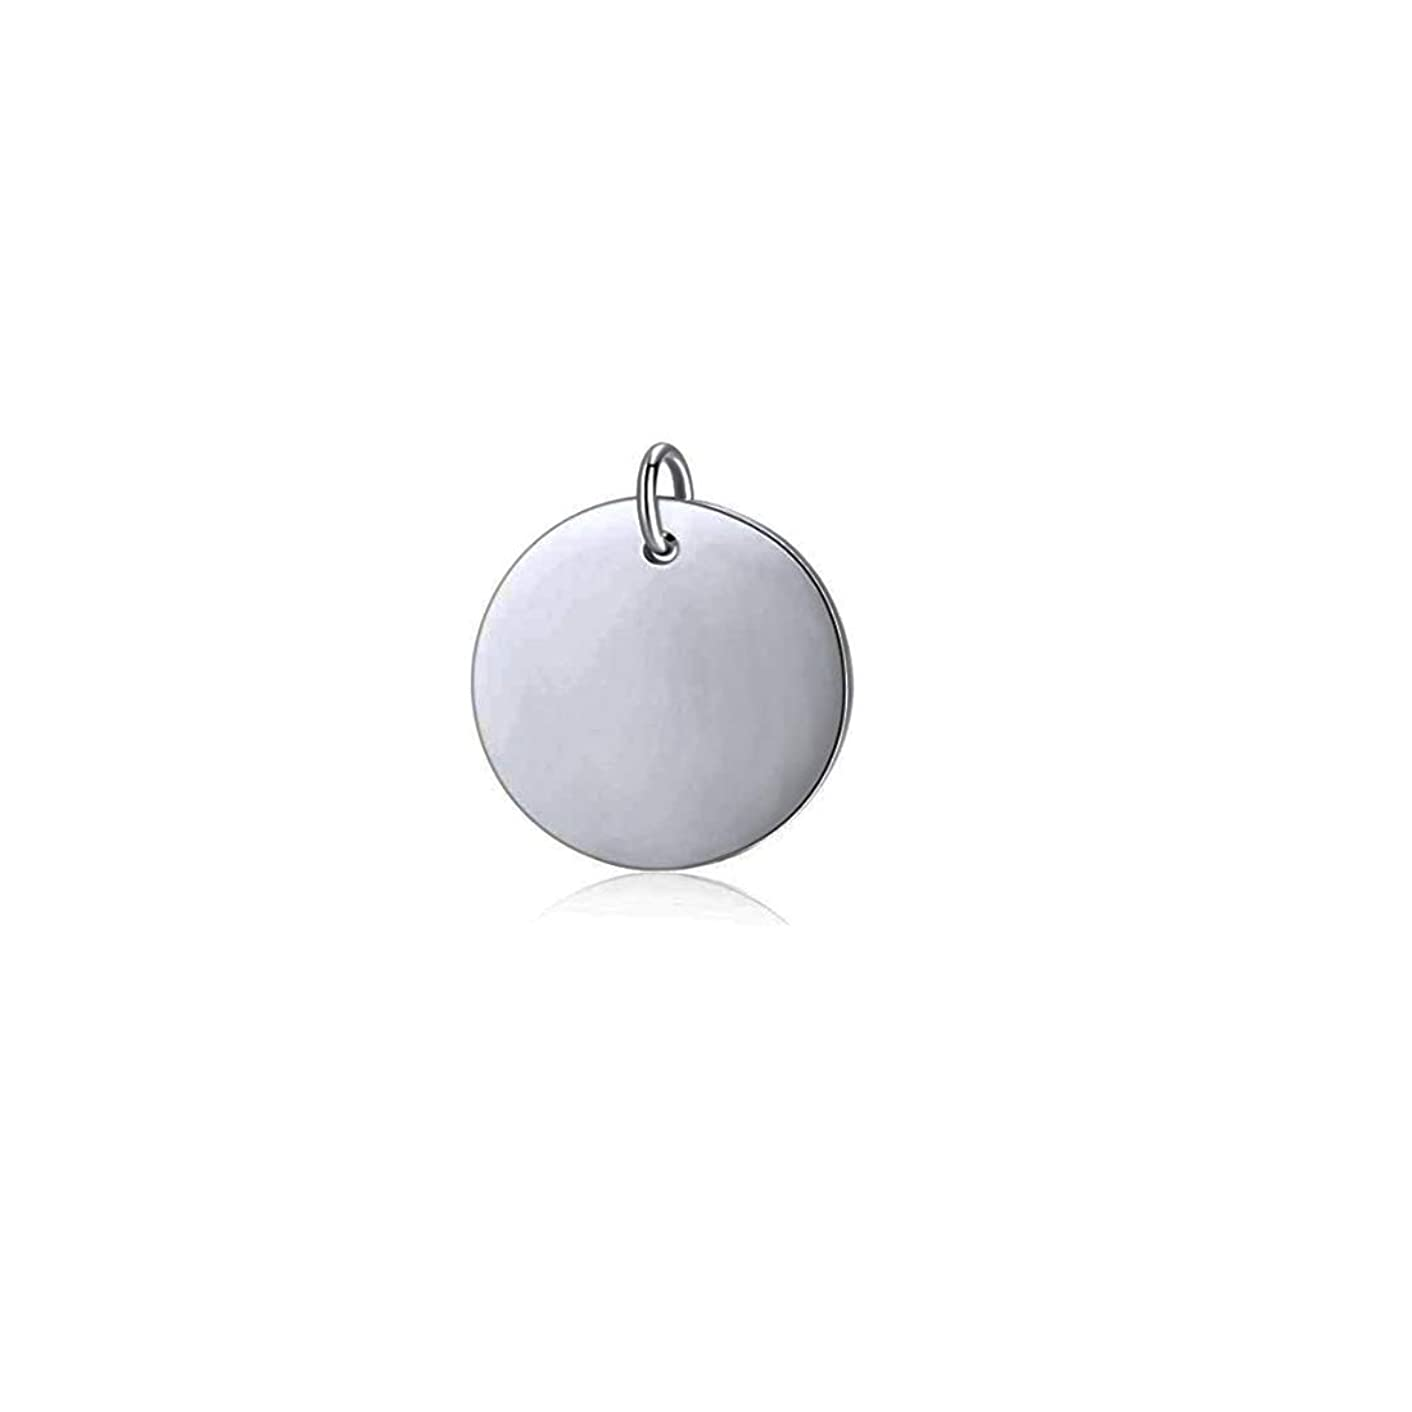 Mei Show 925 Sterling Silver Round Disc Pendant Blank Stamping Tag Necklace Bracelet Earring Pendant Charms